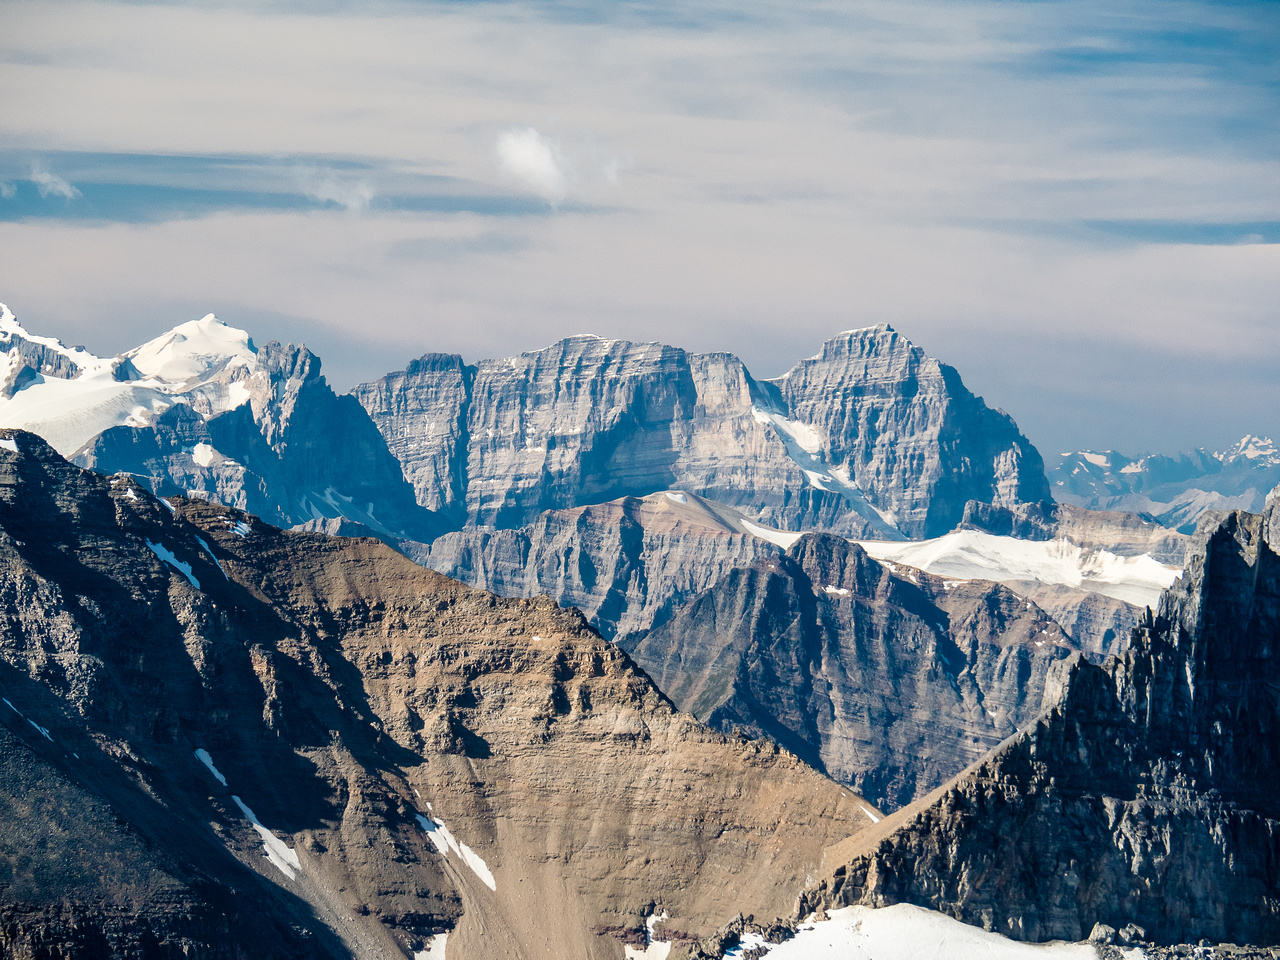 Vaux now at left and Mount Stephen just right of center.